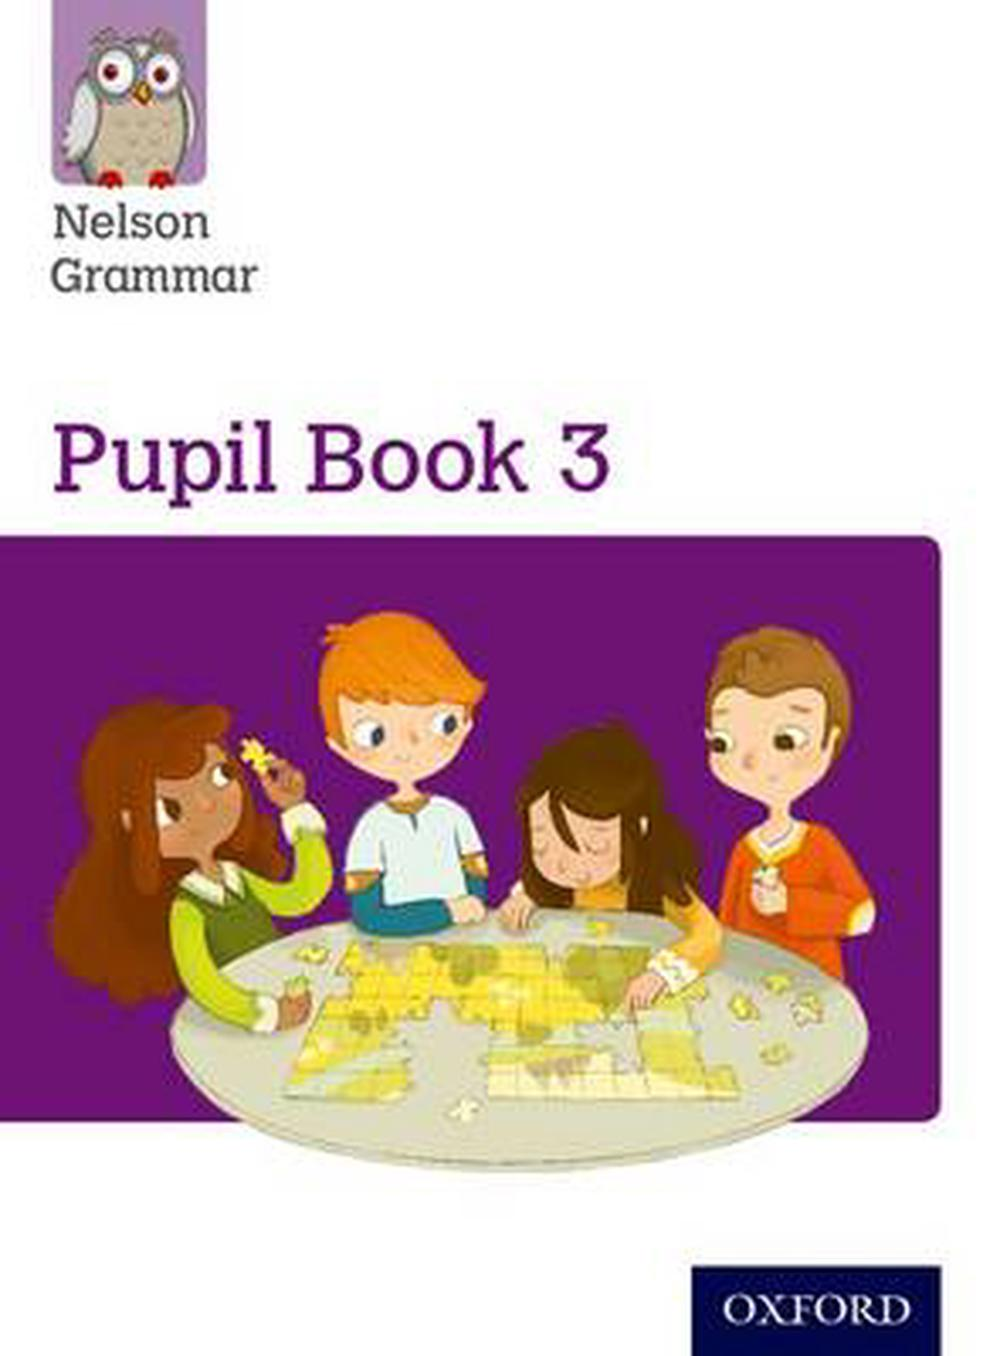 Nelson Grammar Pupil Book 3 Year 3/p4